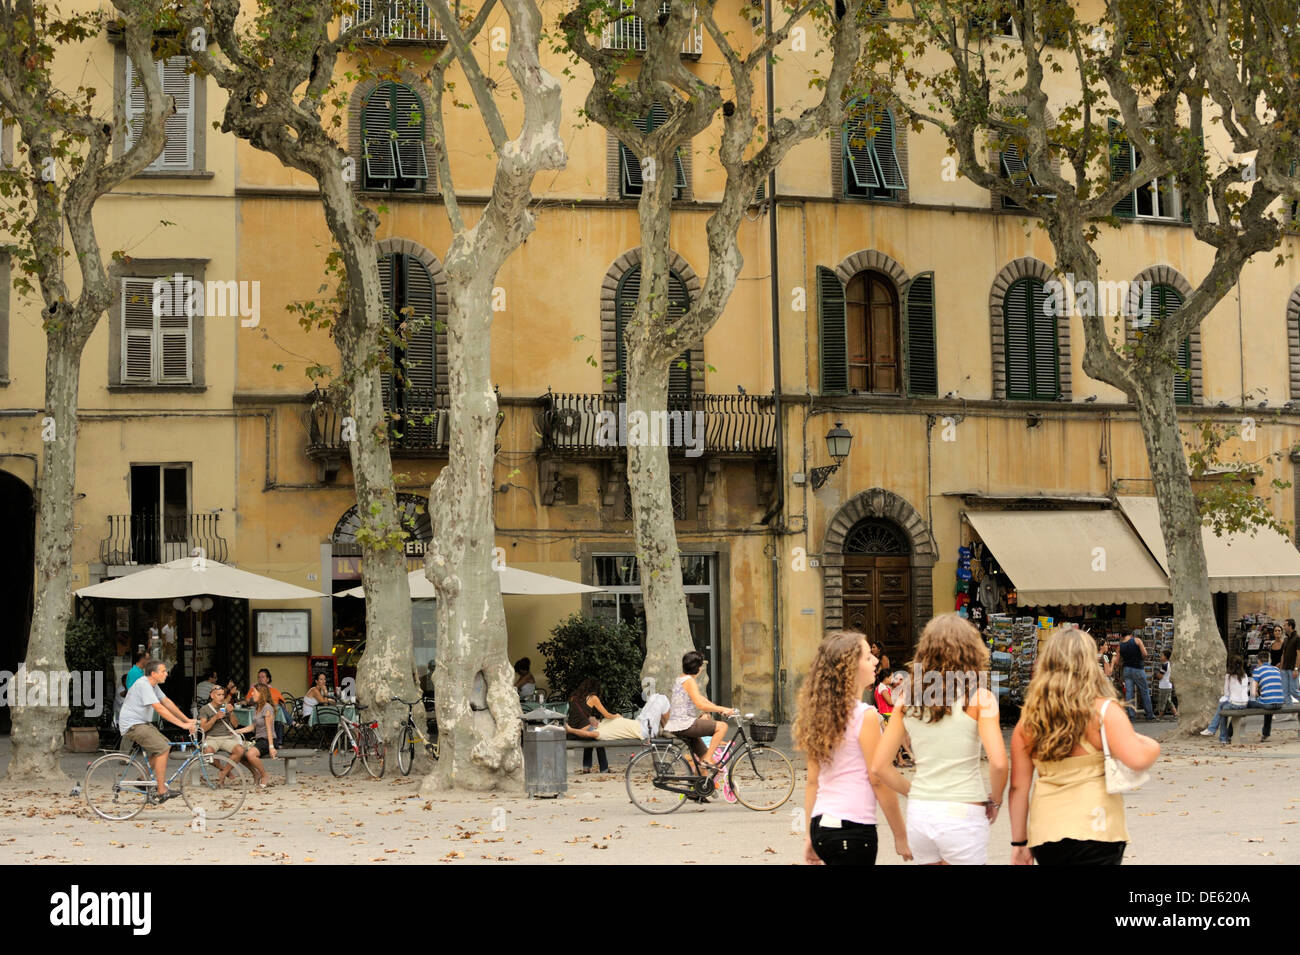 Lucca, Tuscany, Italy. Cafes bars restaurants apartments houses shops in the Piazza Napoleone in the old town centre of Lucca - Stock Image